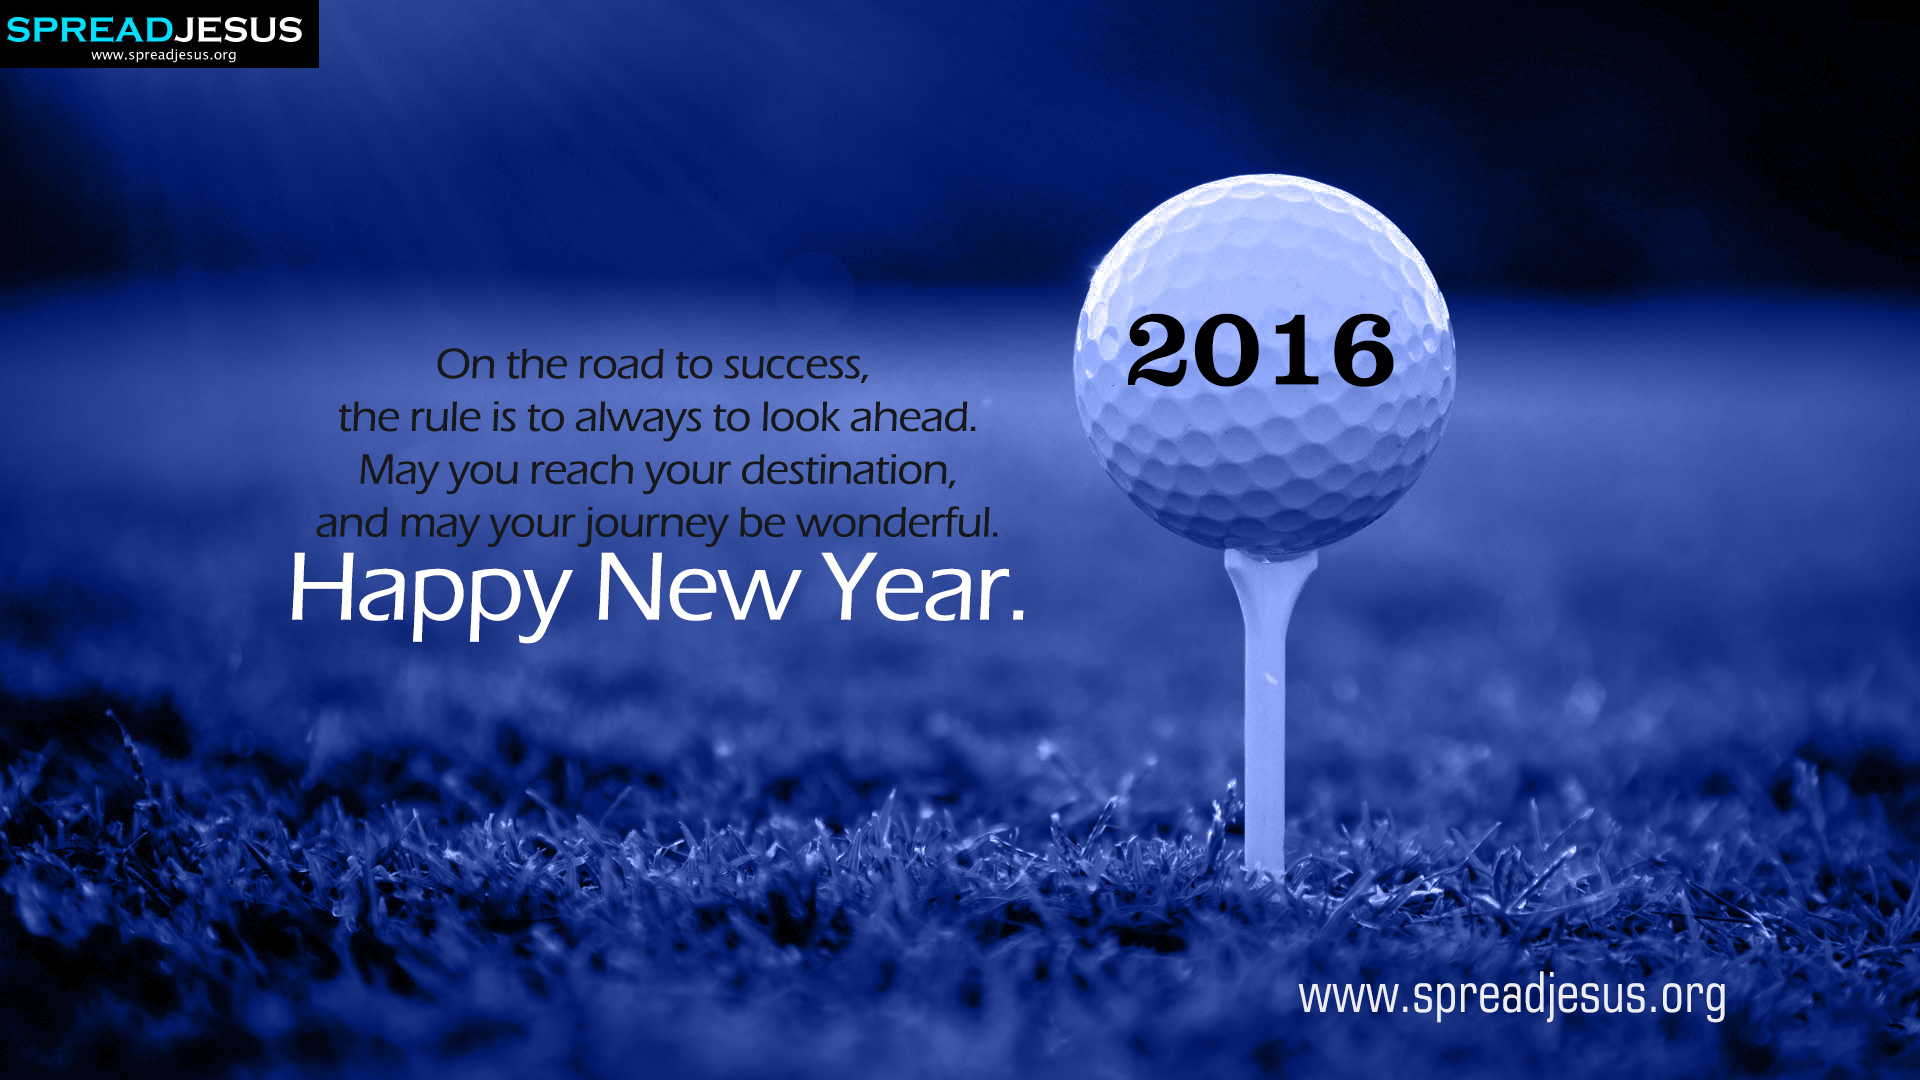 happy new year 2016 hd wallpapers download1 happy new